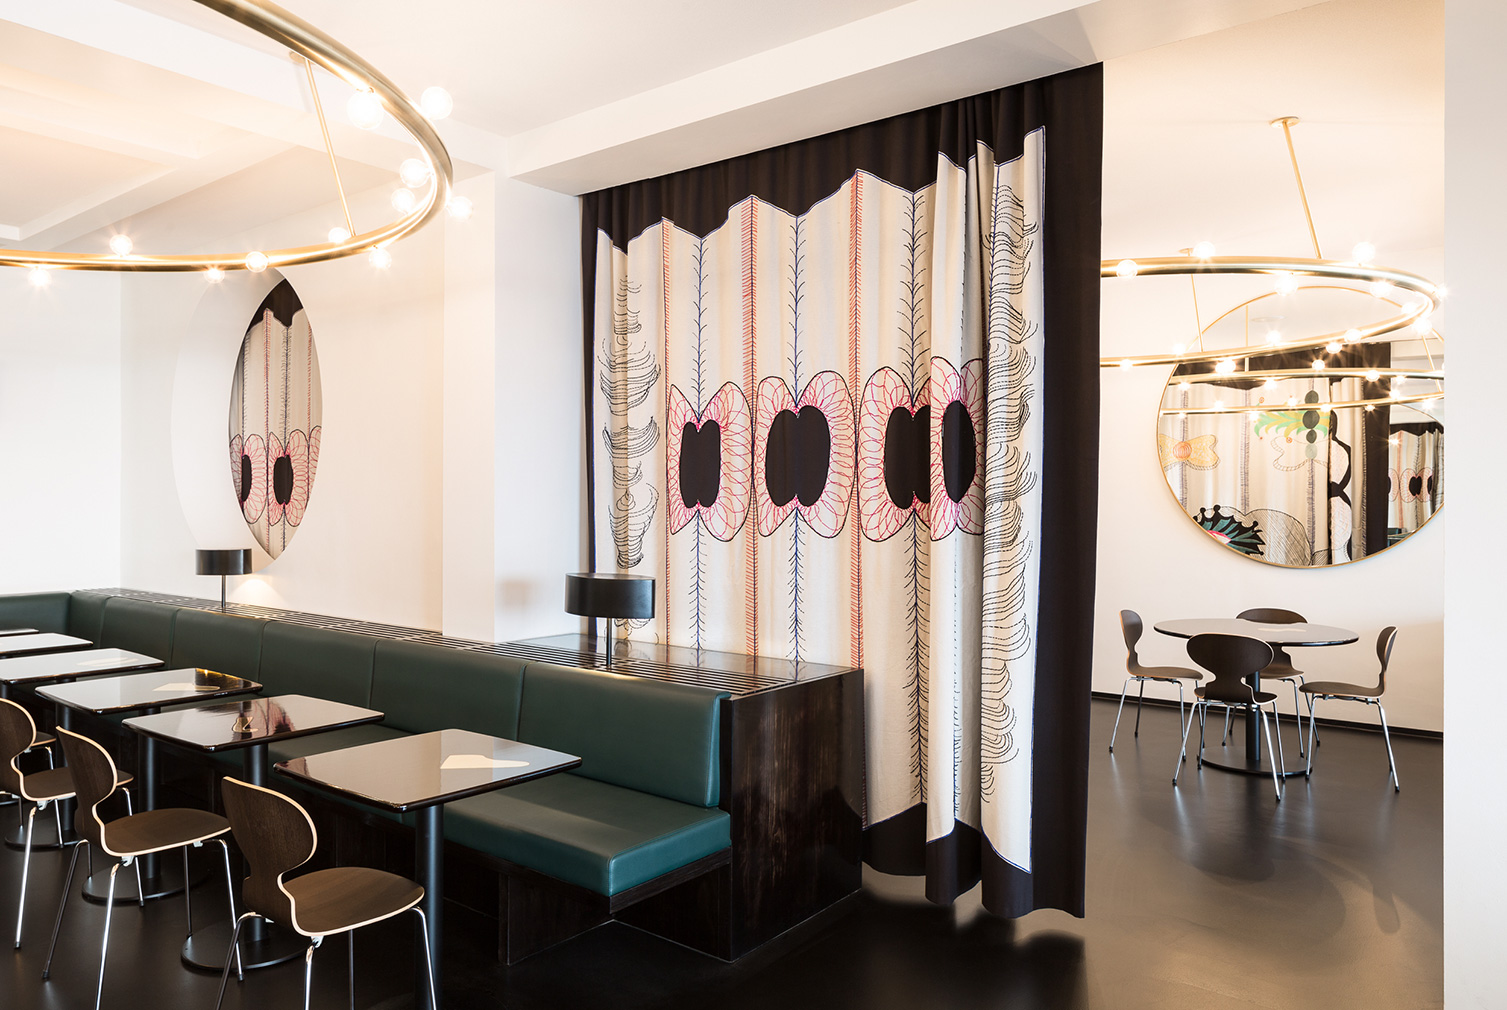 Art Deco Style Victor Caf 233 Opens In Brussels Bozar Arts